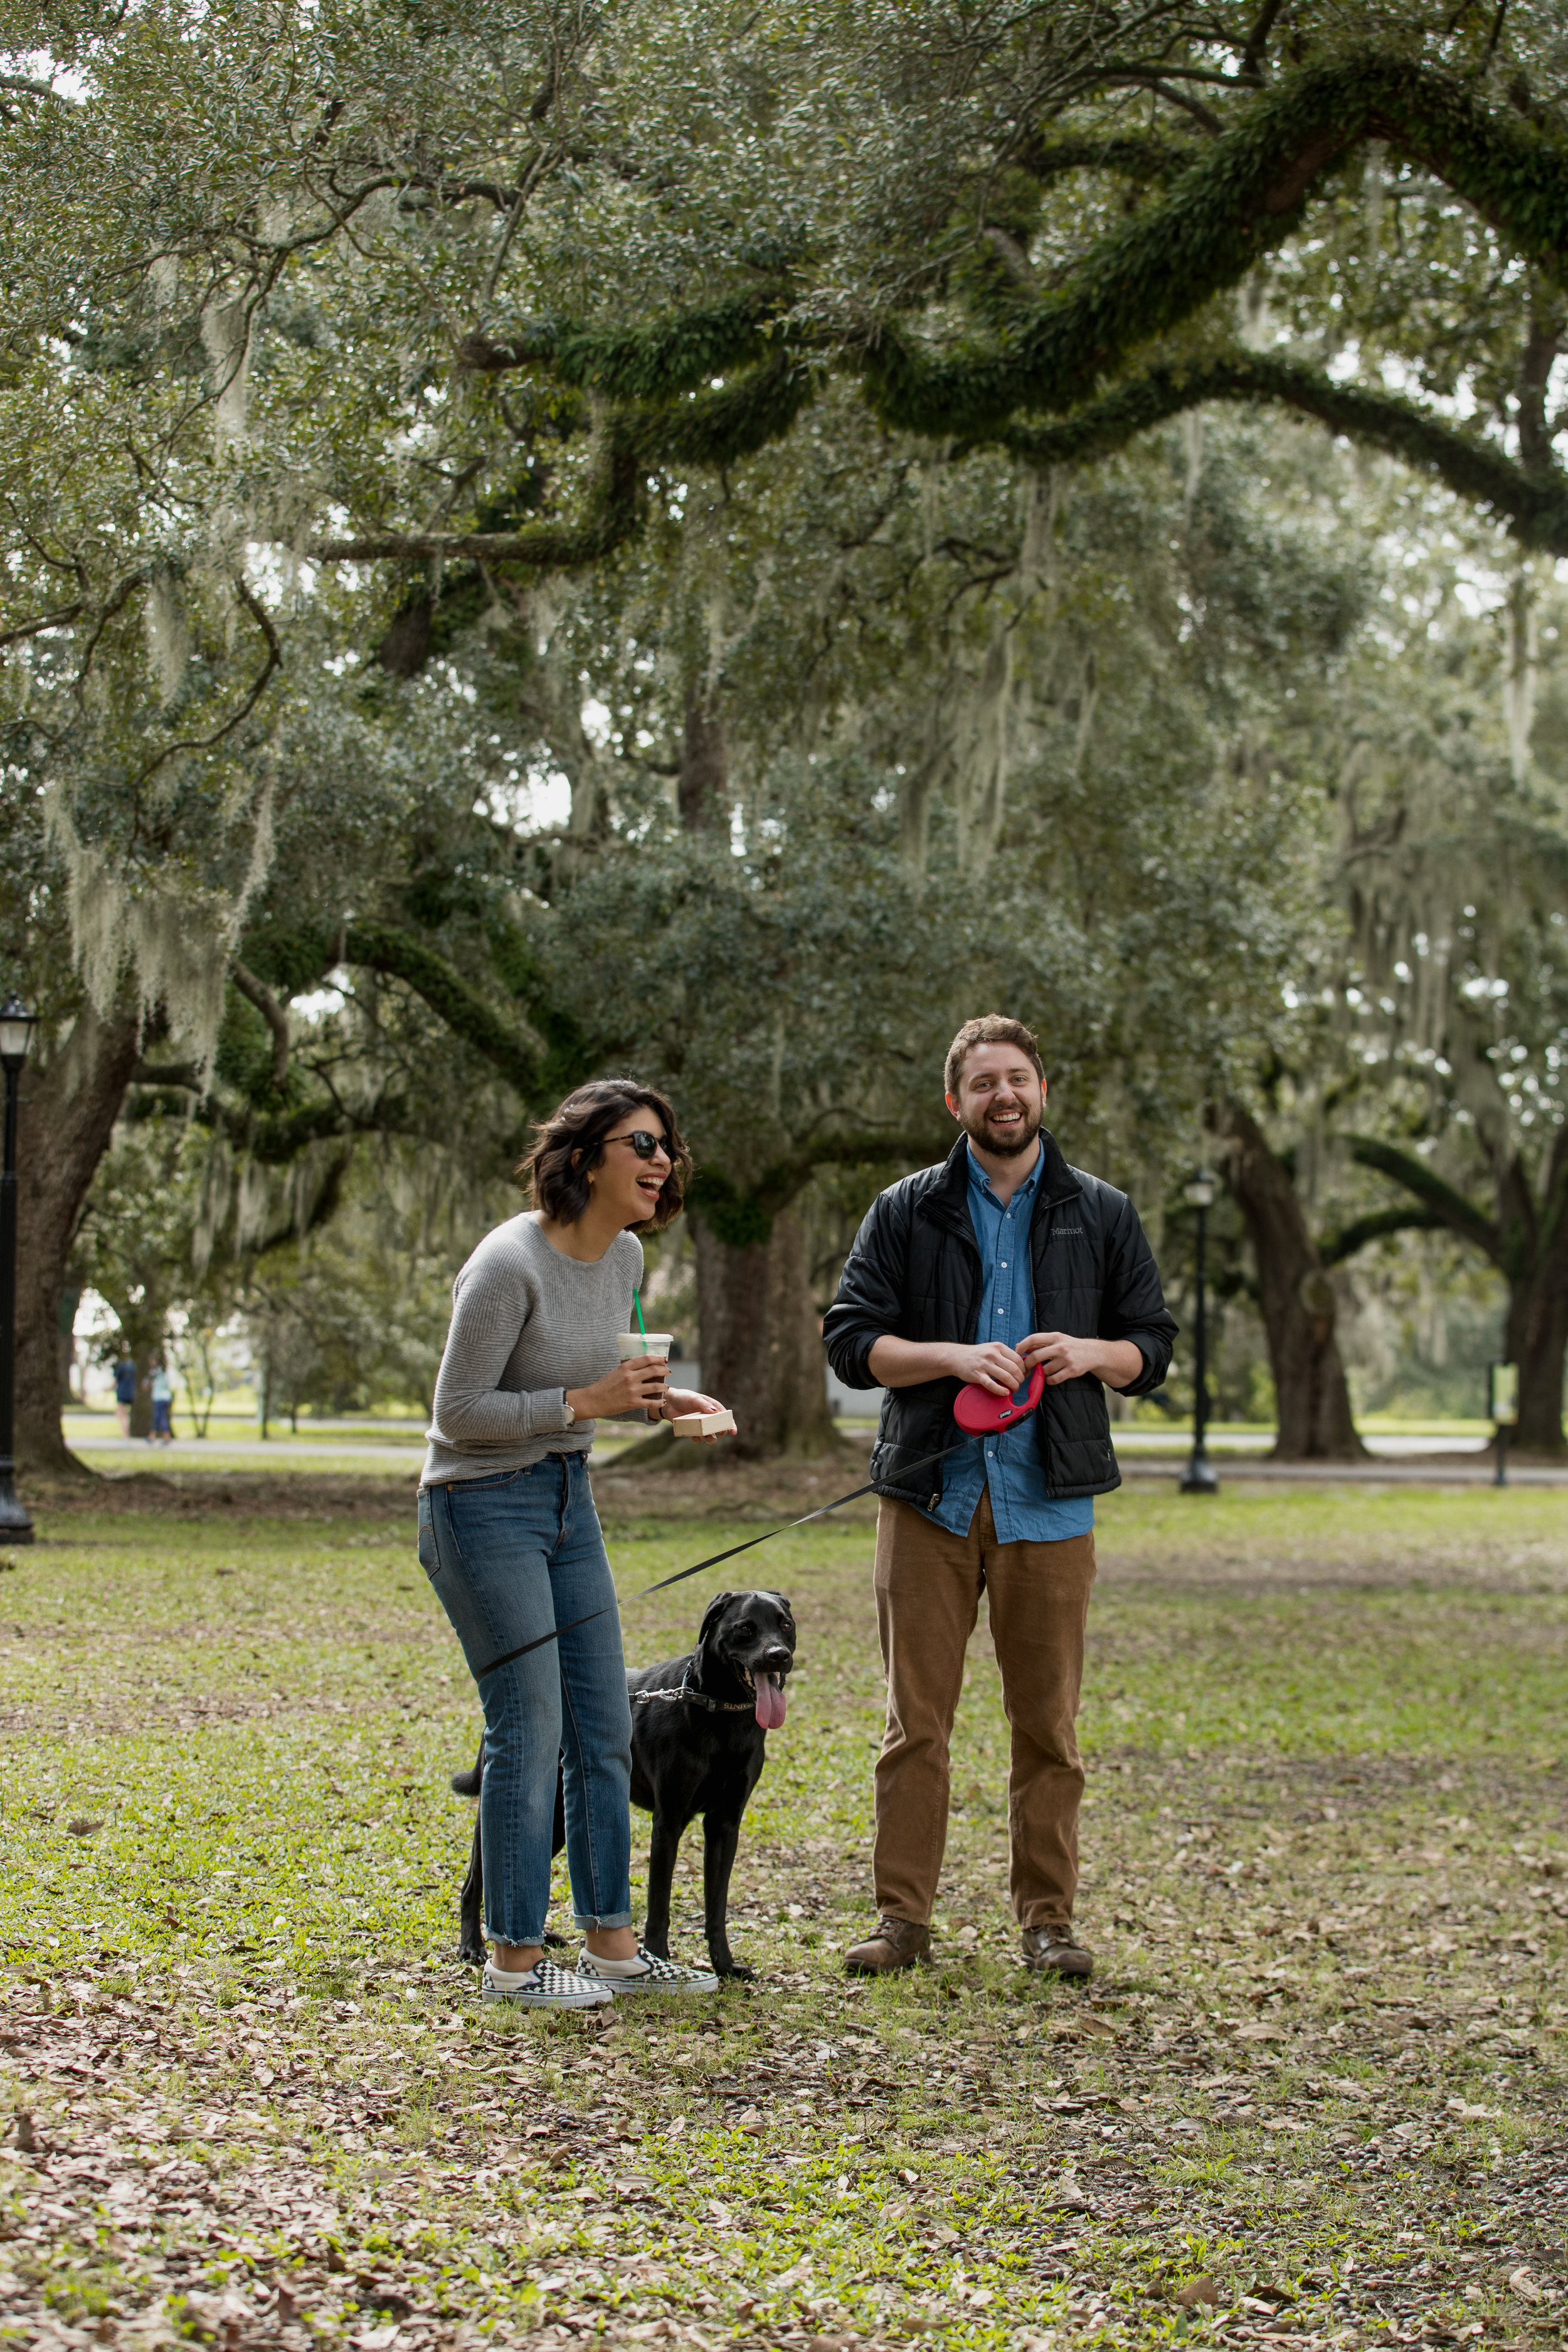 Alex and their puppy, Riggs surprised Janice during their Audubon Park engagement! We were so happy to capture this sweet moment!